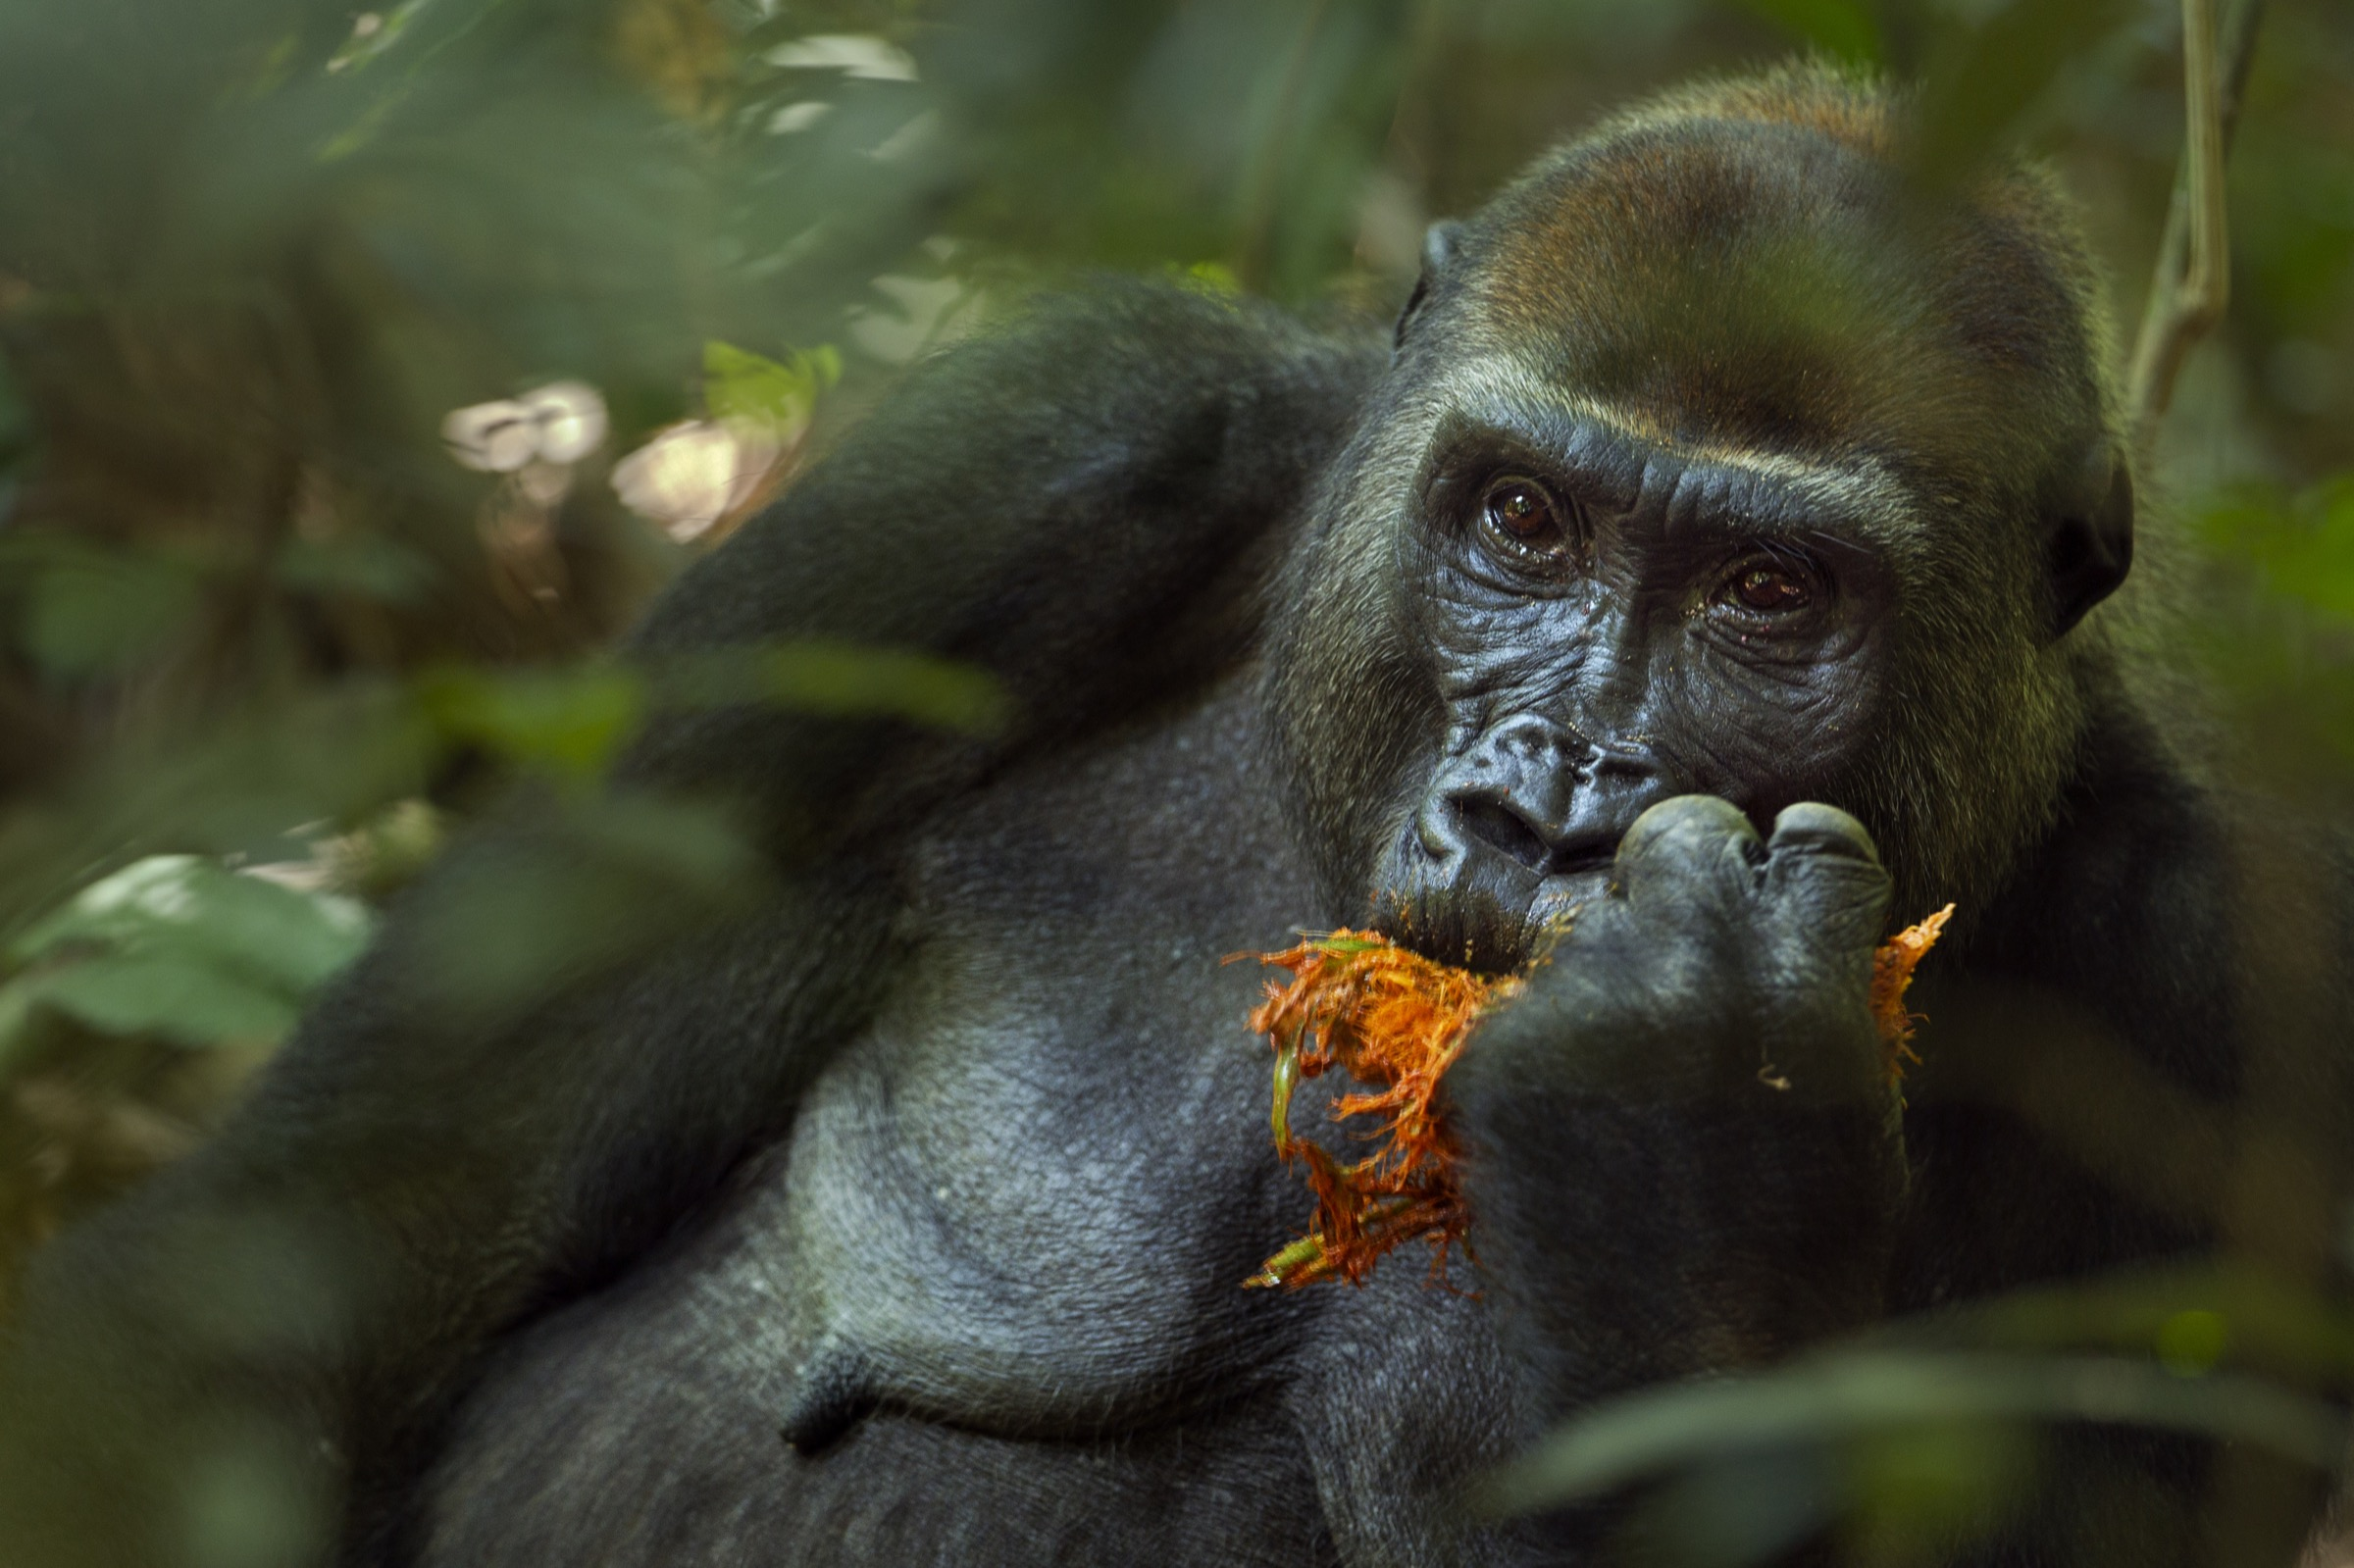 Malui, the dominant female in the family, often fed on fruit in the Bai Hokou, Dzanga Sangha Special Dense Forest Reserve. Fruit makes up a big part of the western lowland gorilla diet.